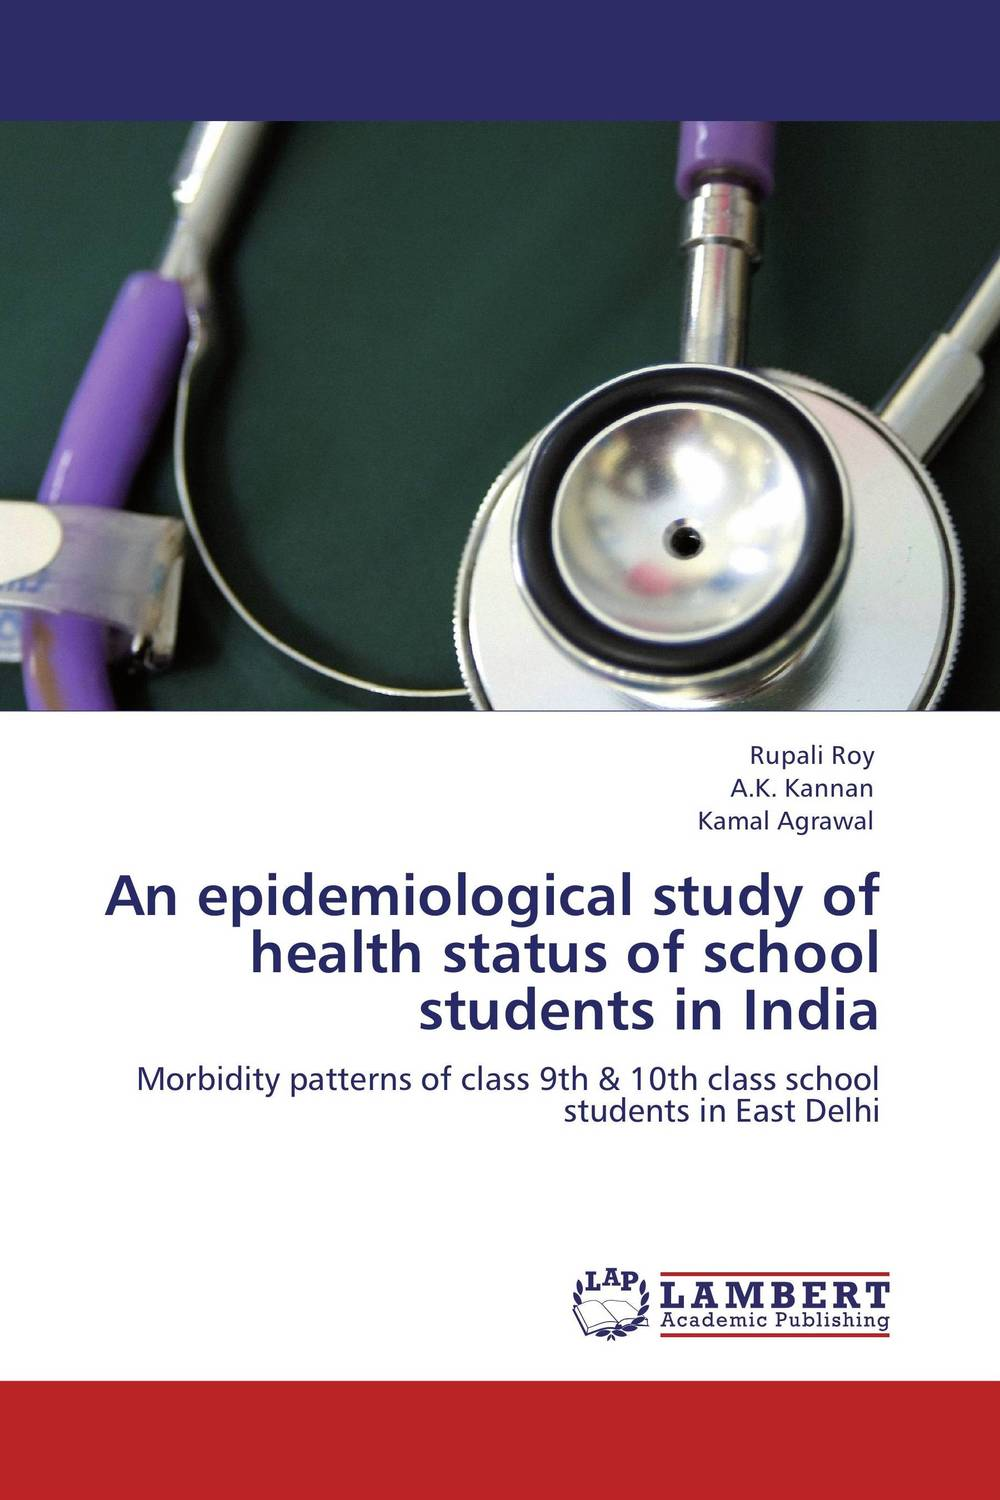 An epidemiological study of health status of school students in India getachew alebie epidemiological study on schistosoma mansoni infection